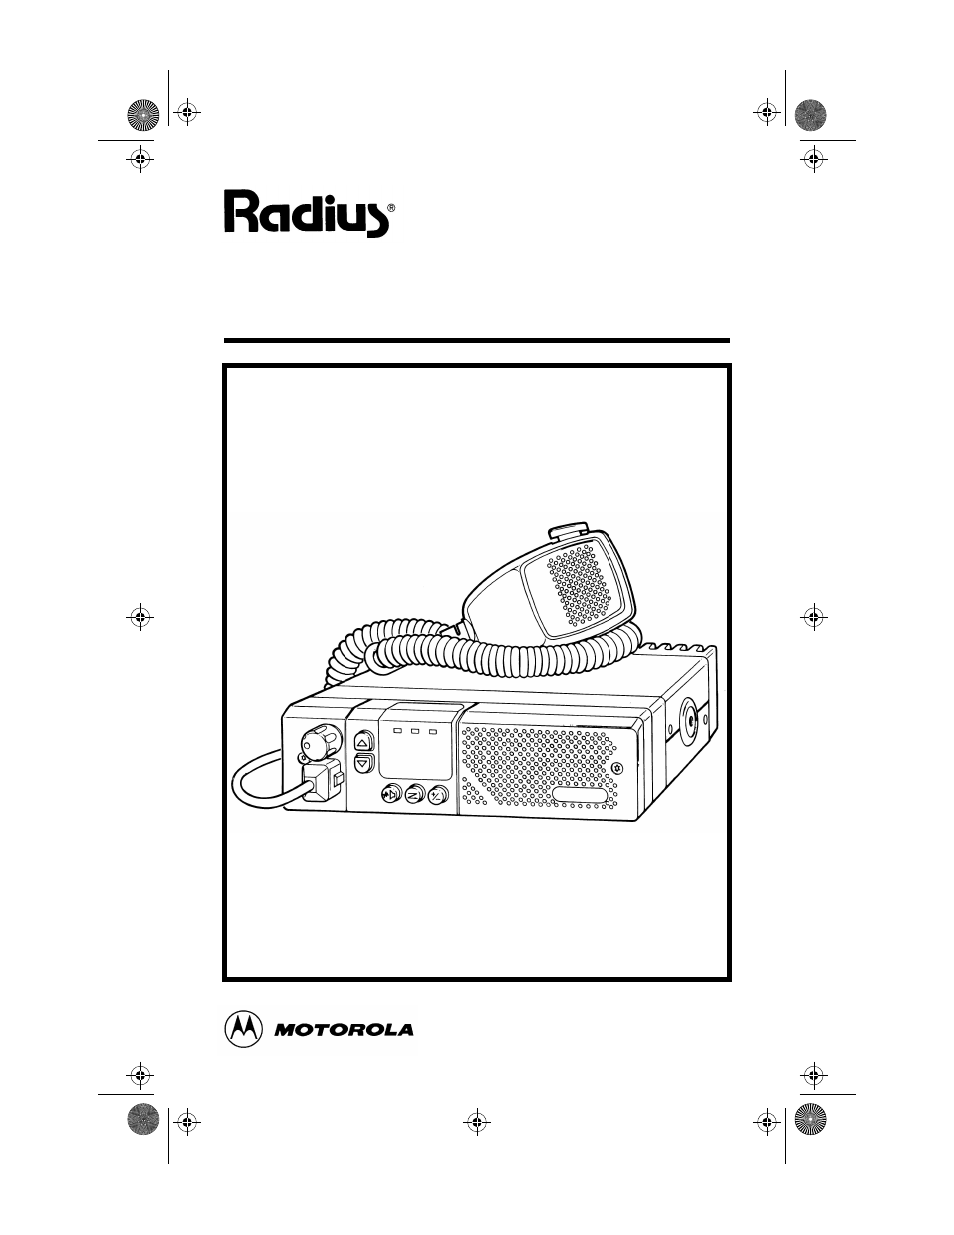 motorola radius gm300 user manual 8 pages rh manualsdir com Motorola GM300 Service Manual Motorola GM300 ManualDownload